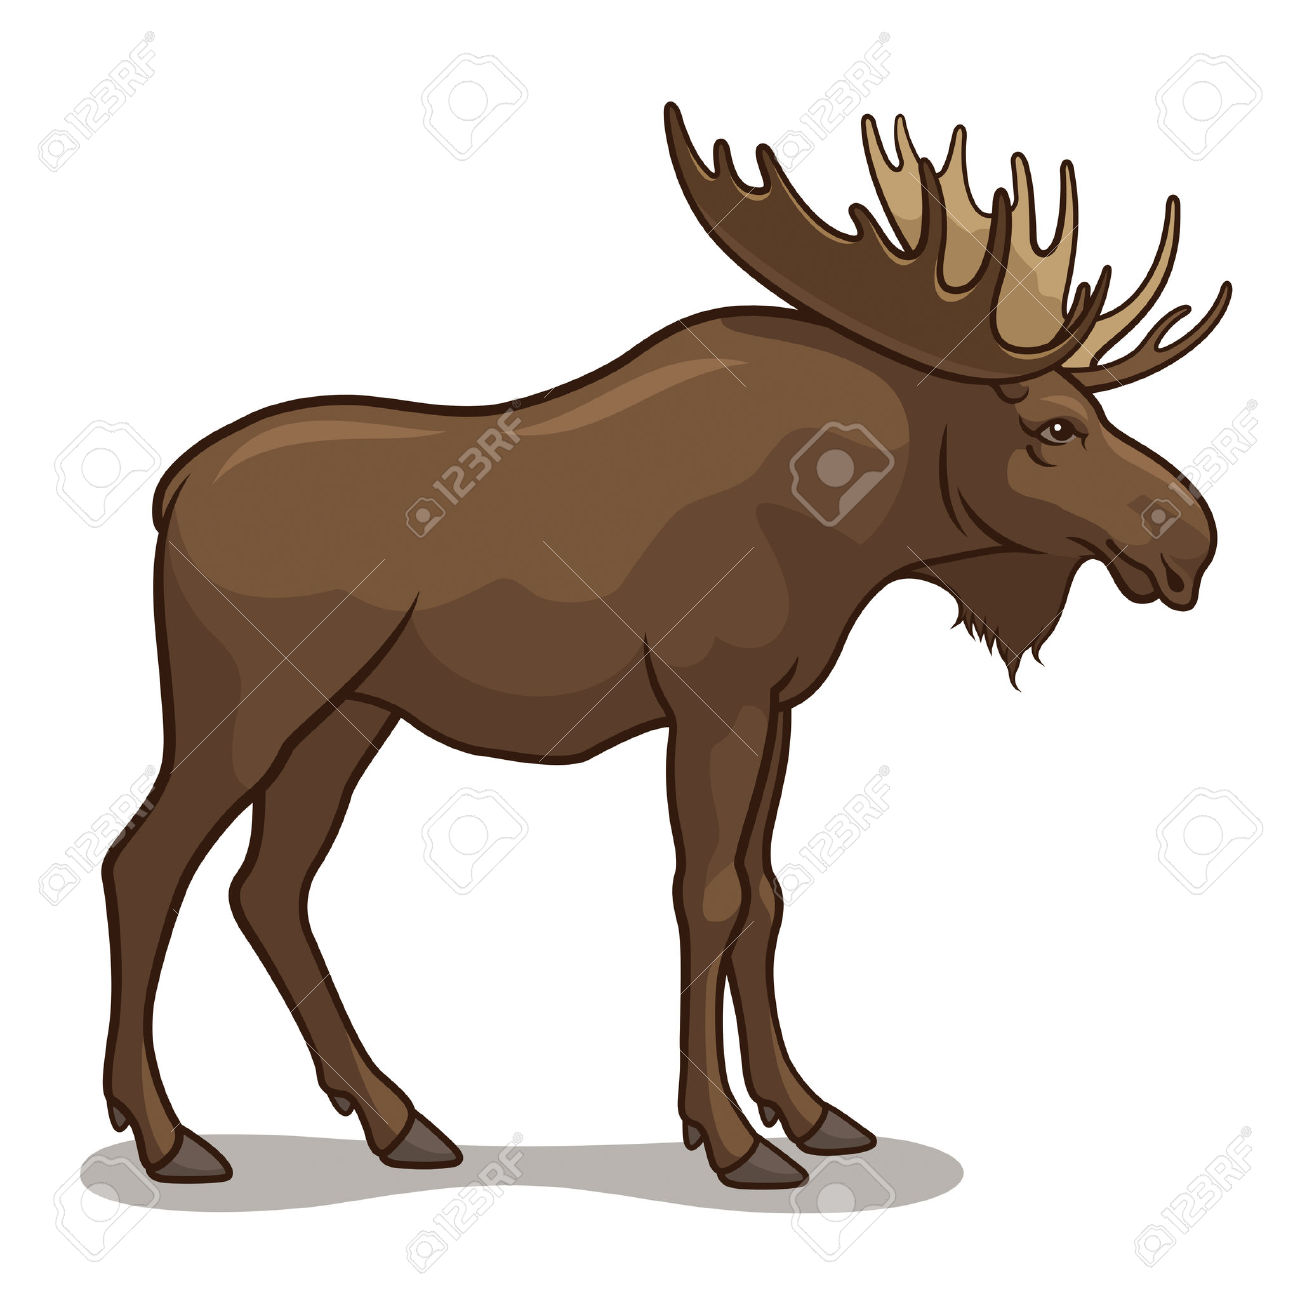 hight resolution of 1300x1300 moose clipart realistic animal